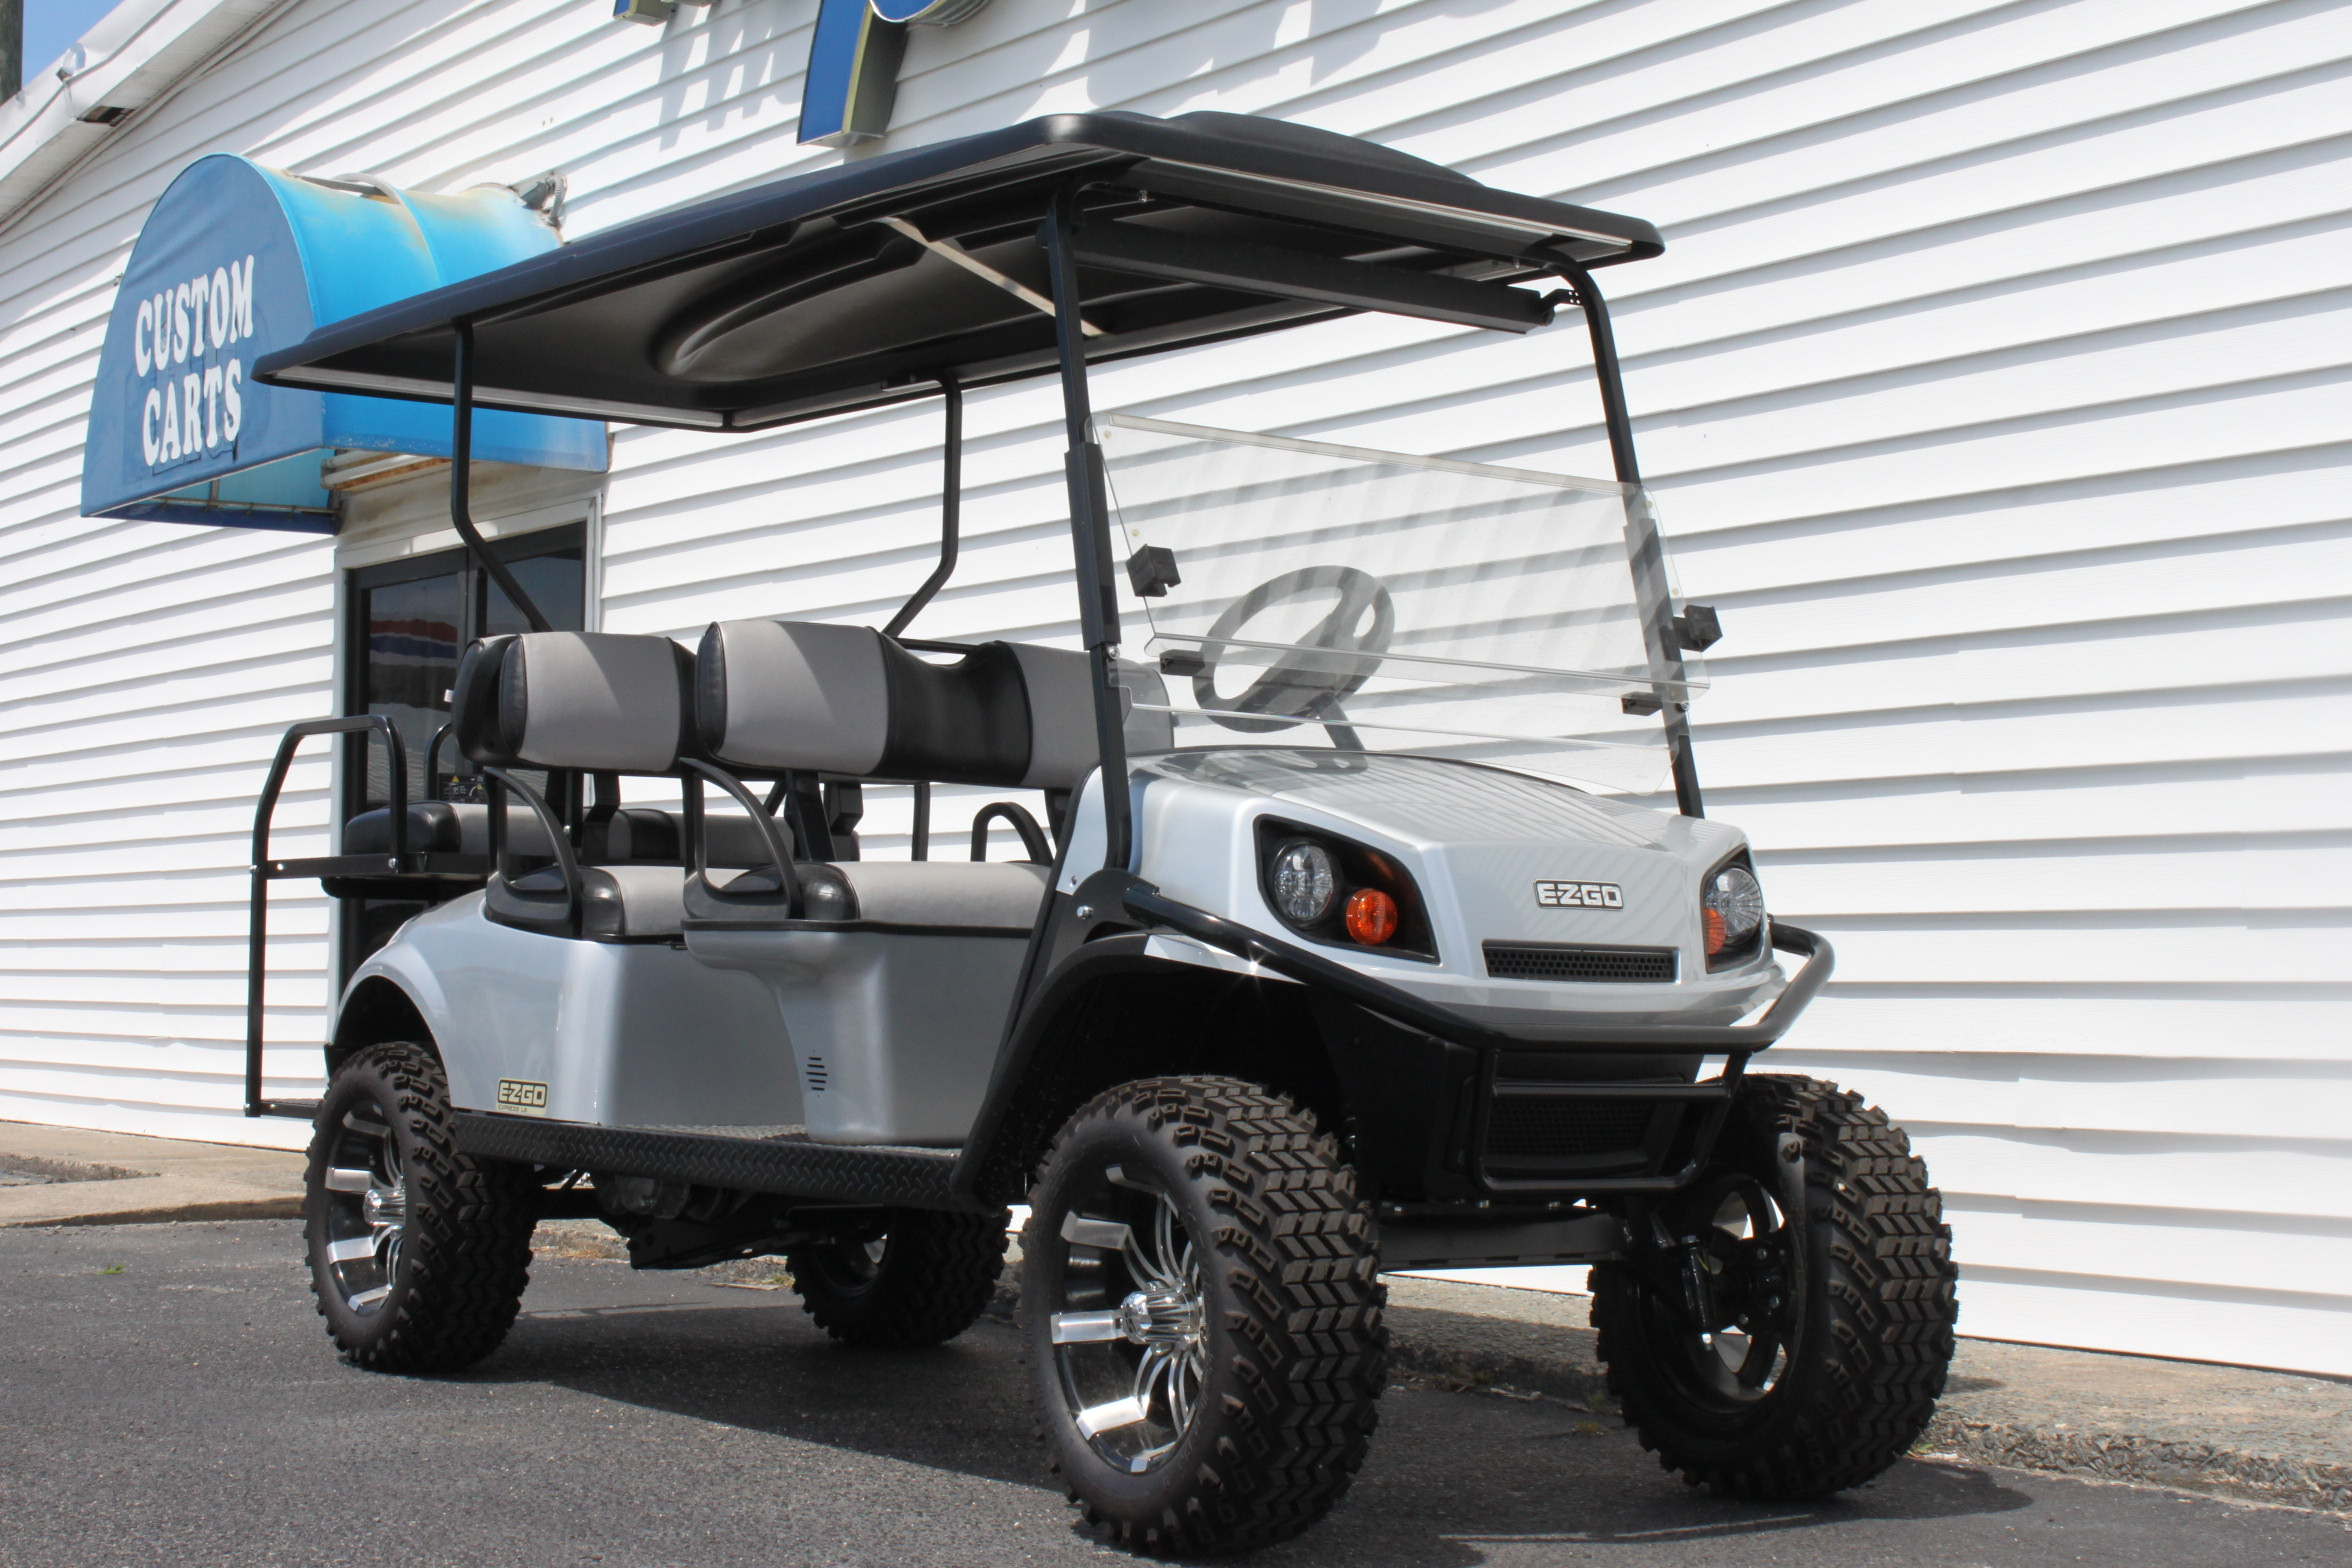 STOCK# 2019SILVERL6, 2019 E-Z-GO L6 EXPRESS GAS GOLF CART